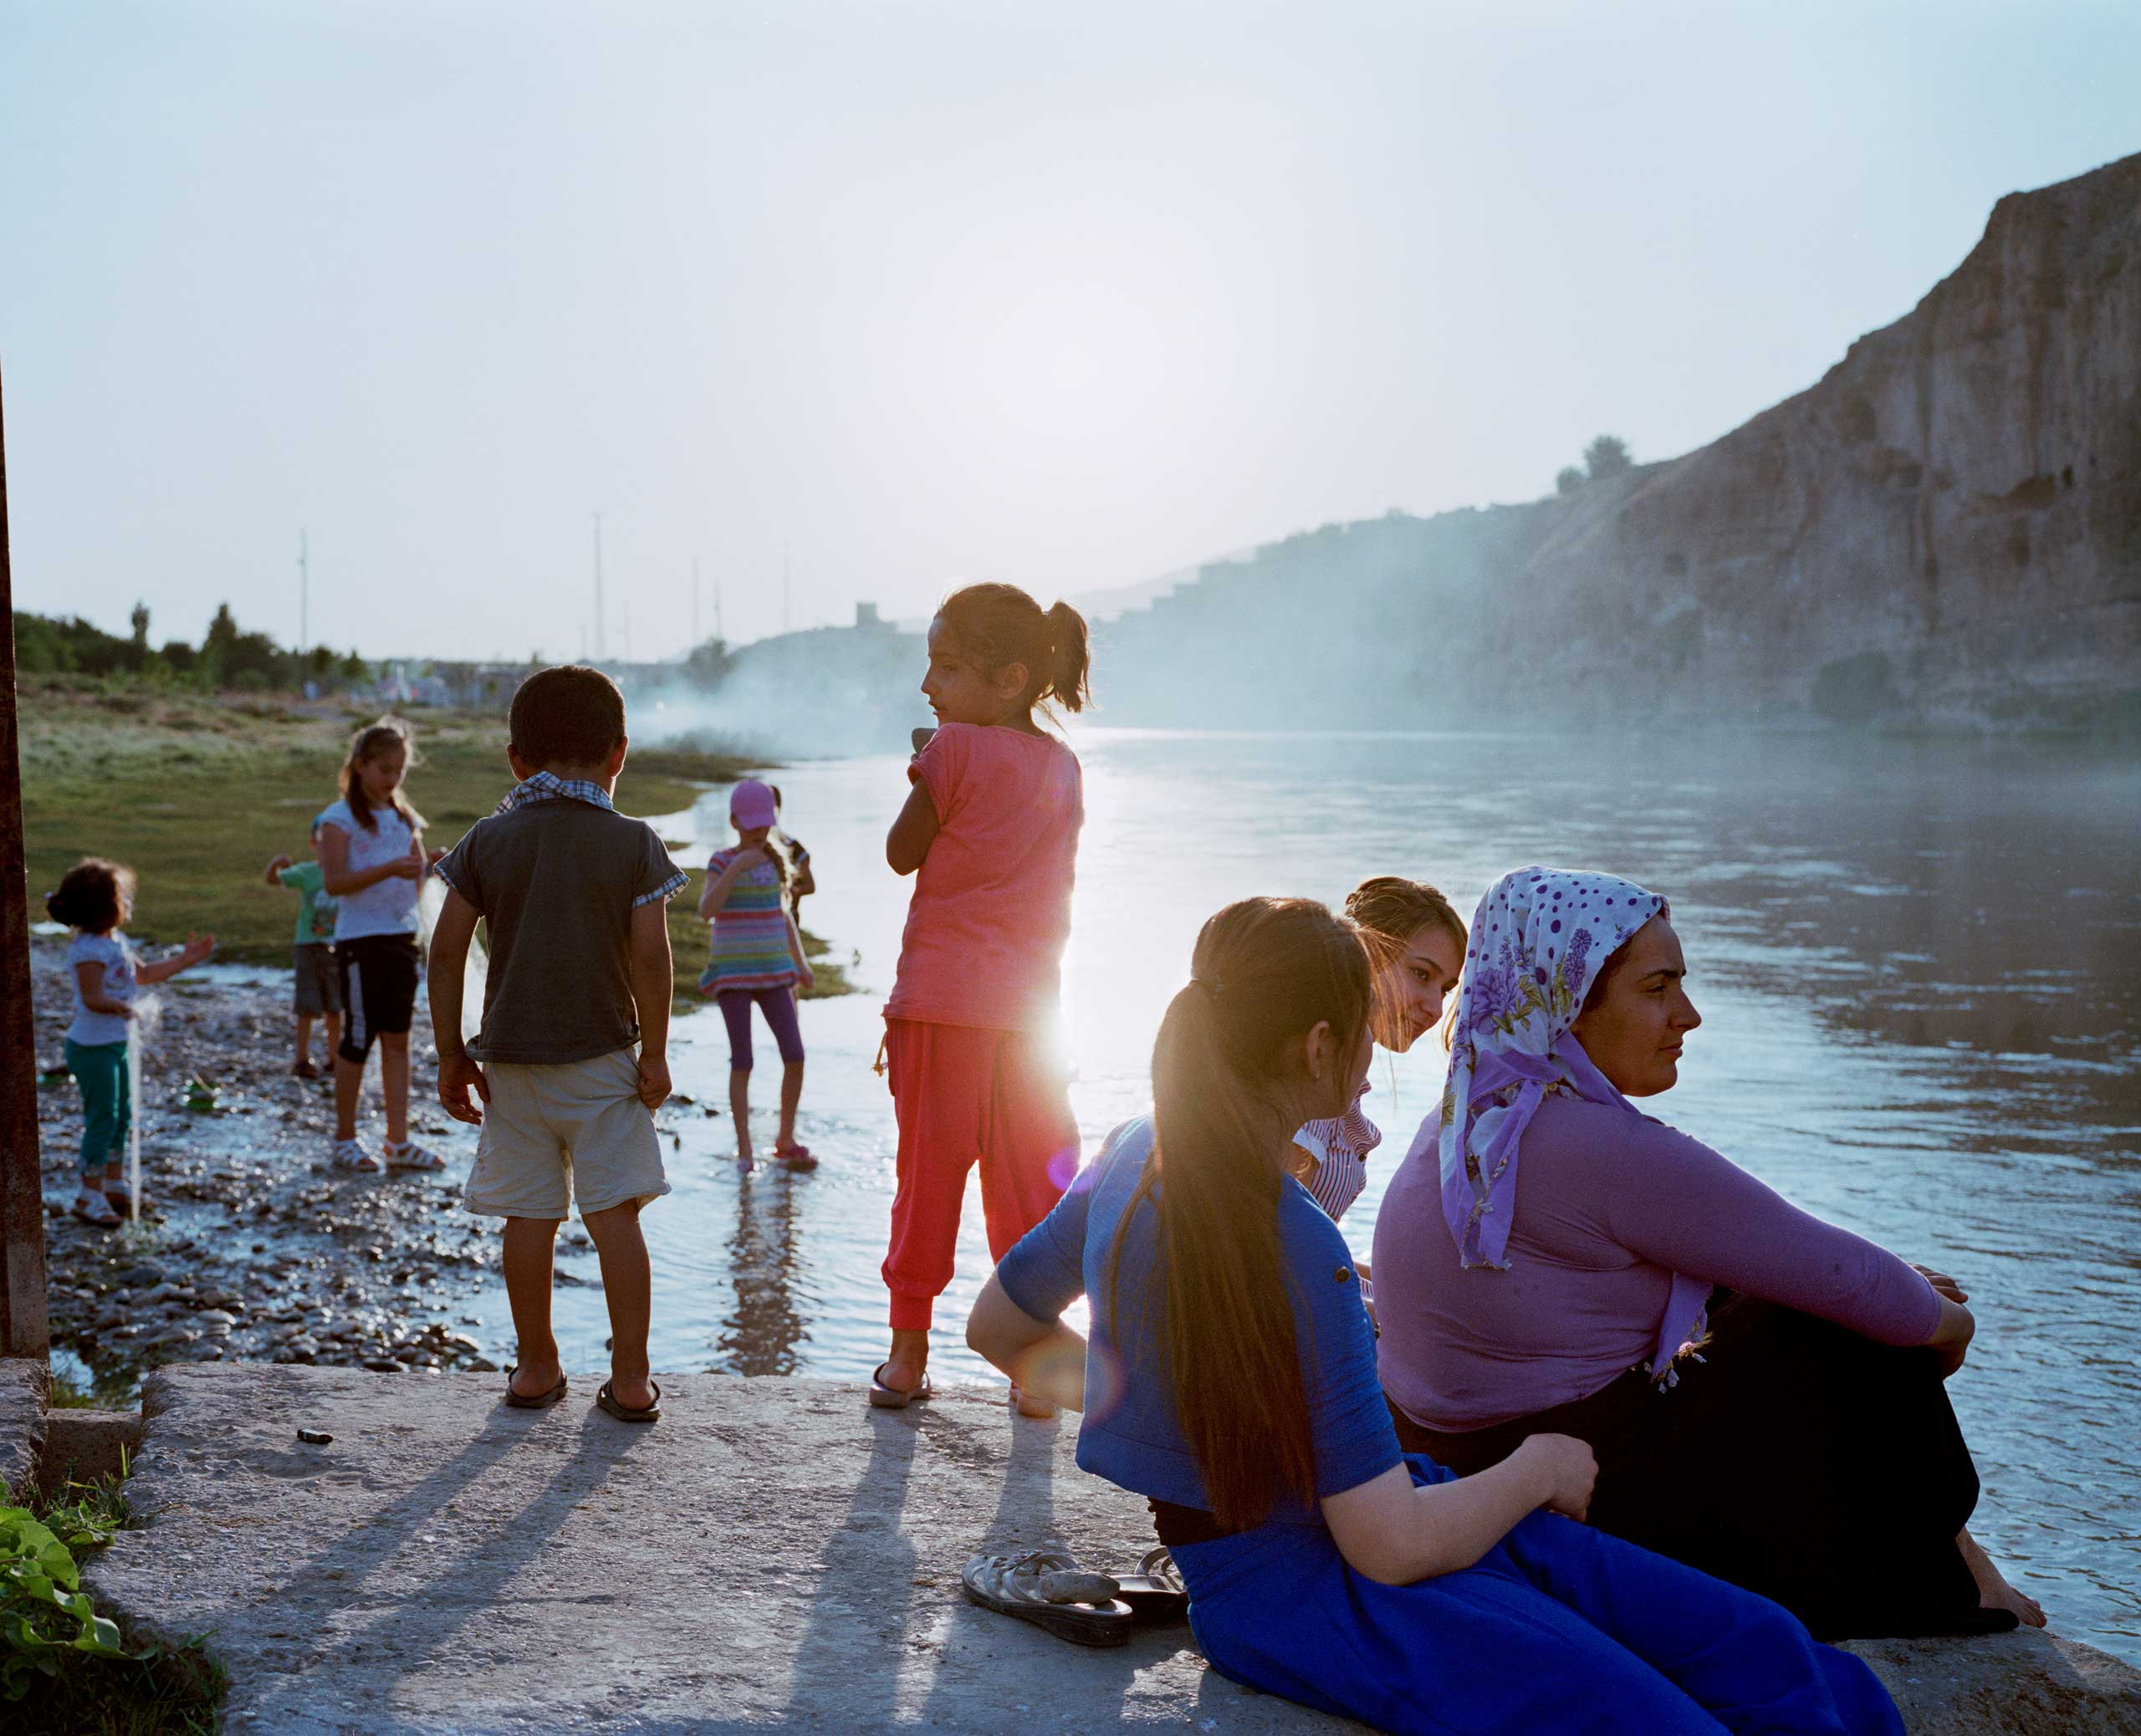 Children play by the banks of the Tigris River. Hasankeyf, Turkey.